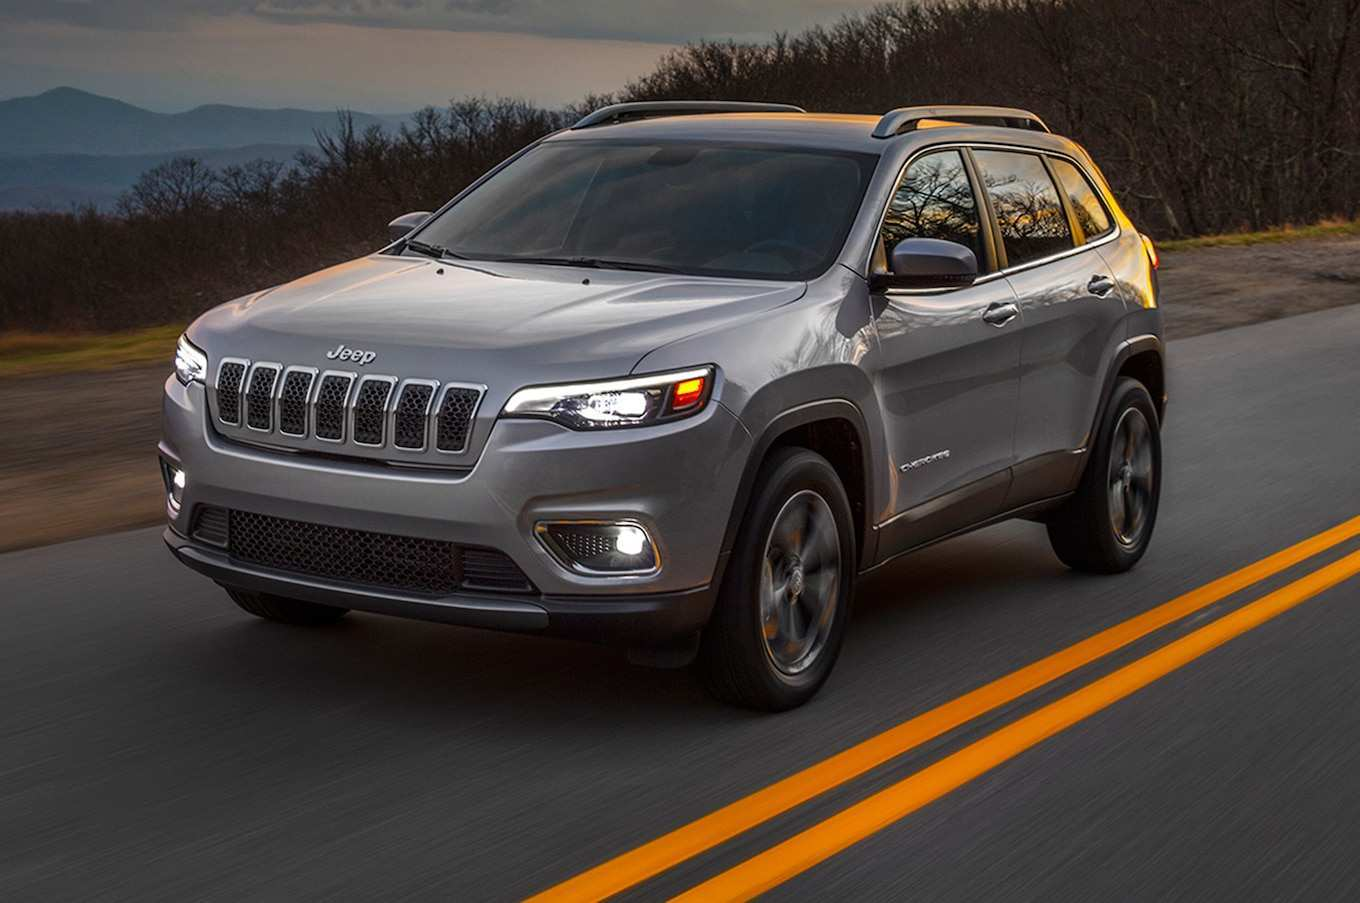 66 Concept of 2019 Jeep Grand Interior with 2019 Jeep Grand